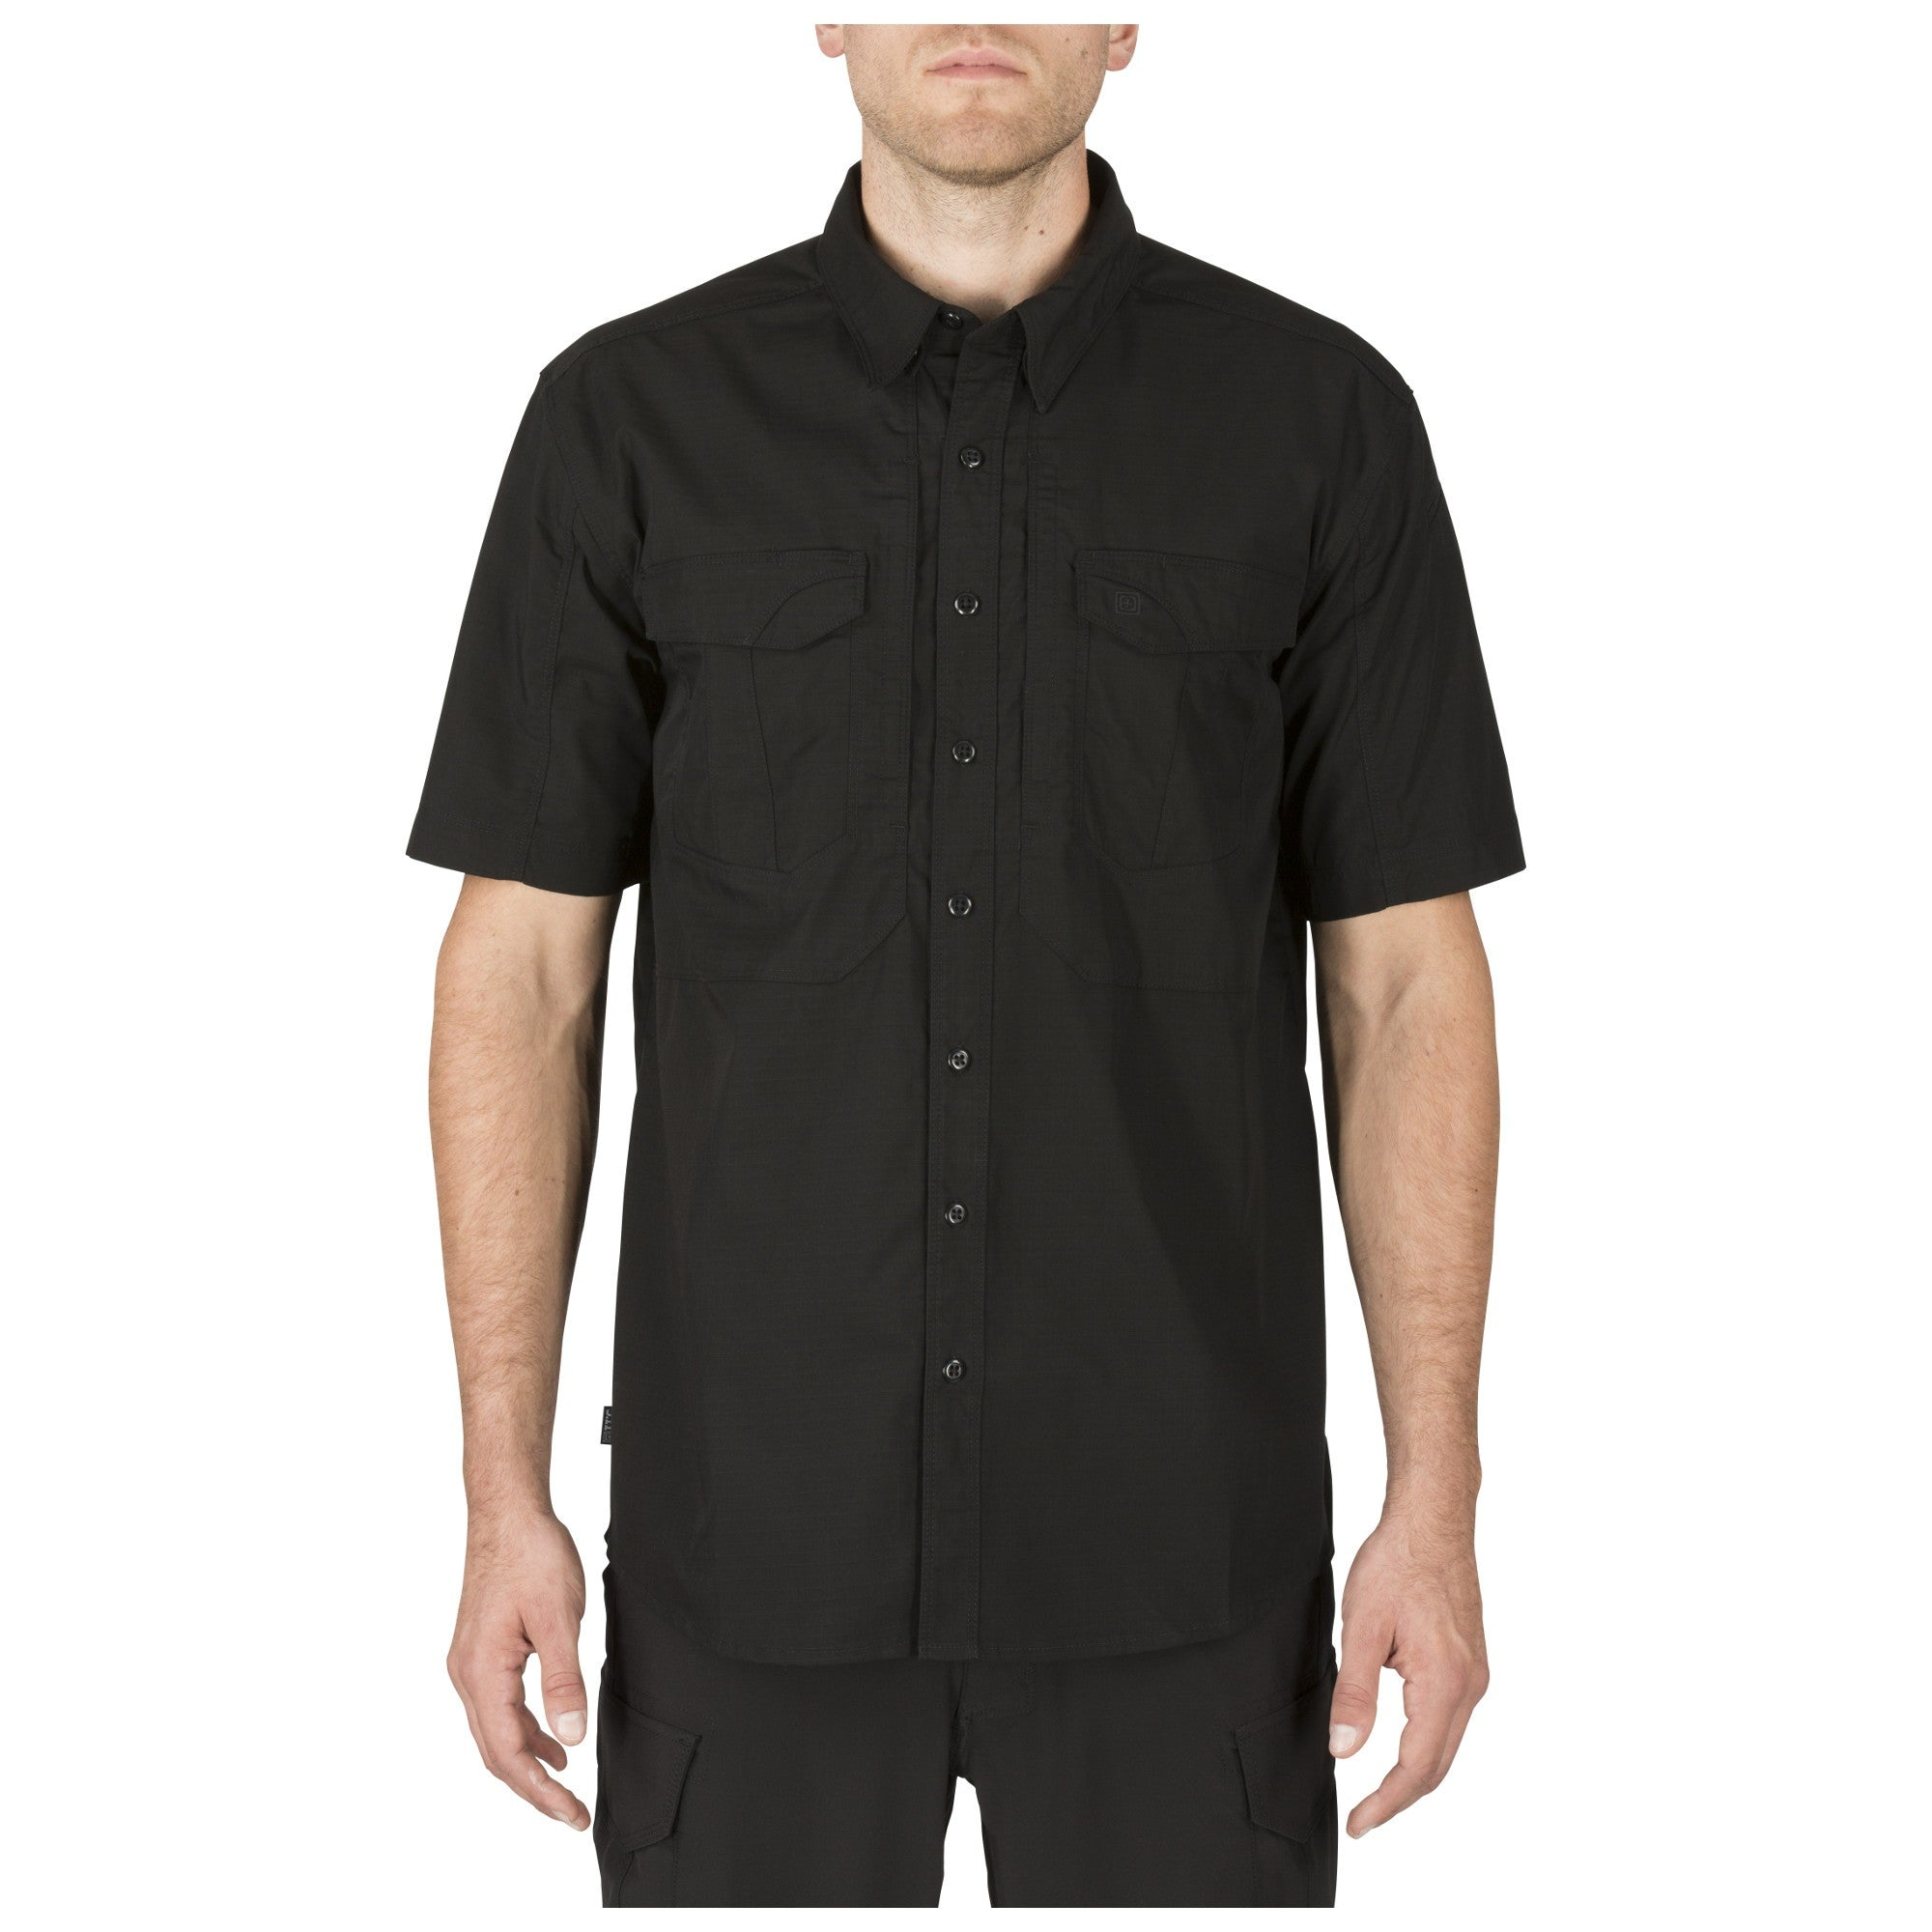 71354 5.11 Stryke™ Shirt - Short Sleeve